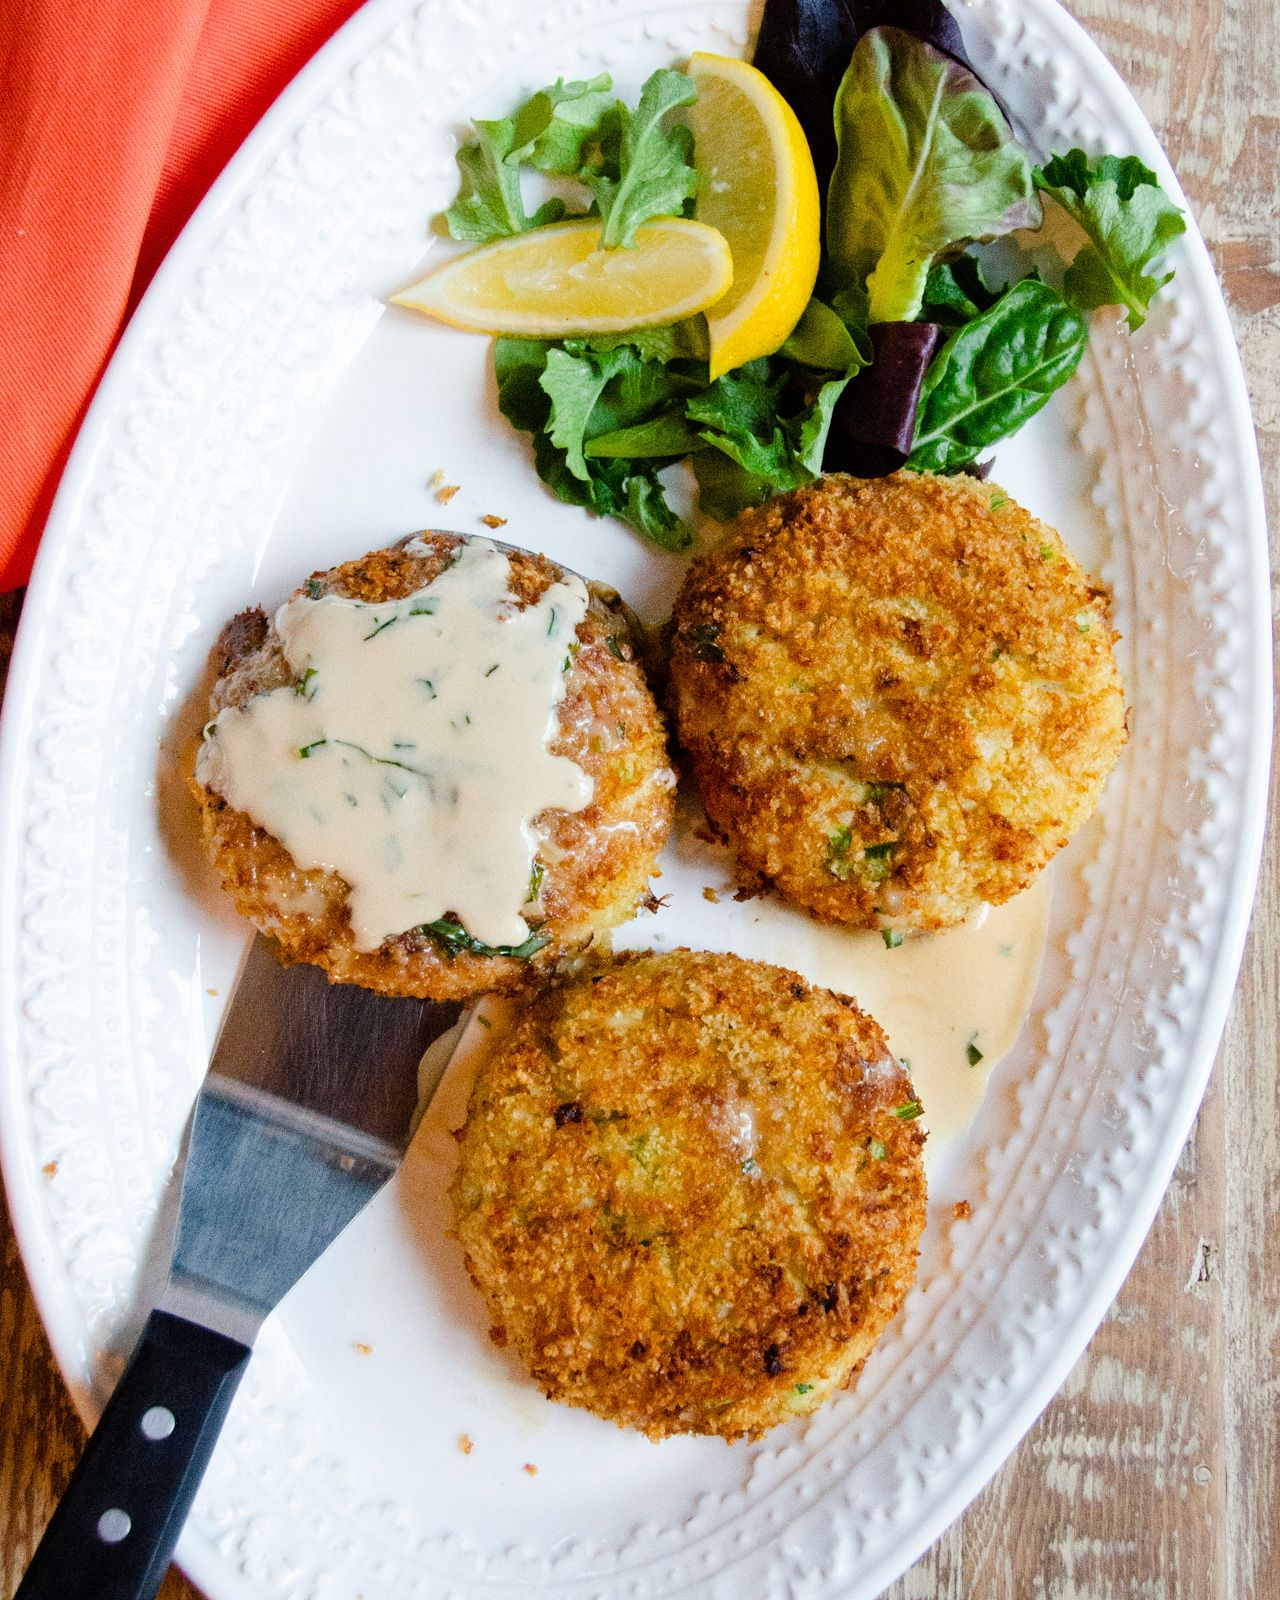 Crab cakes air fryer version recipe with images